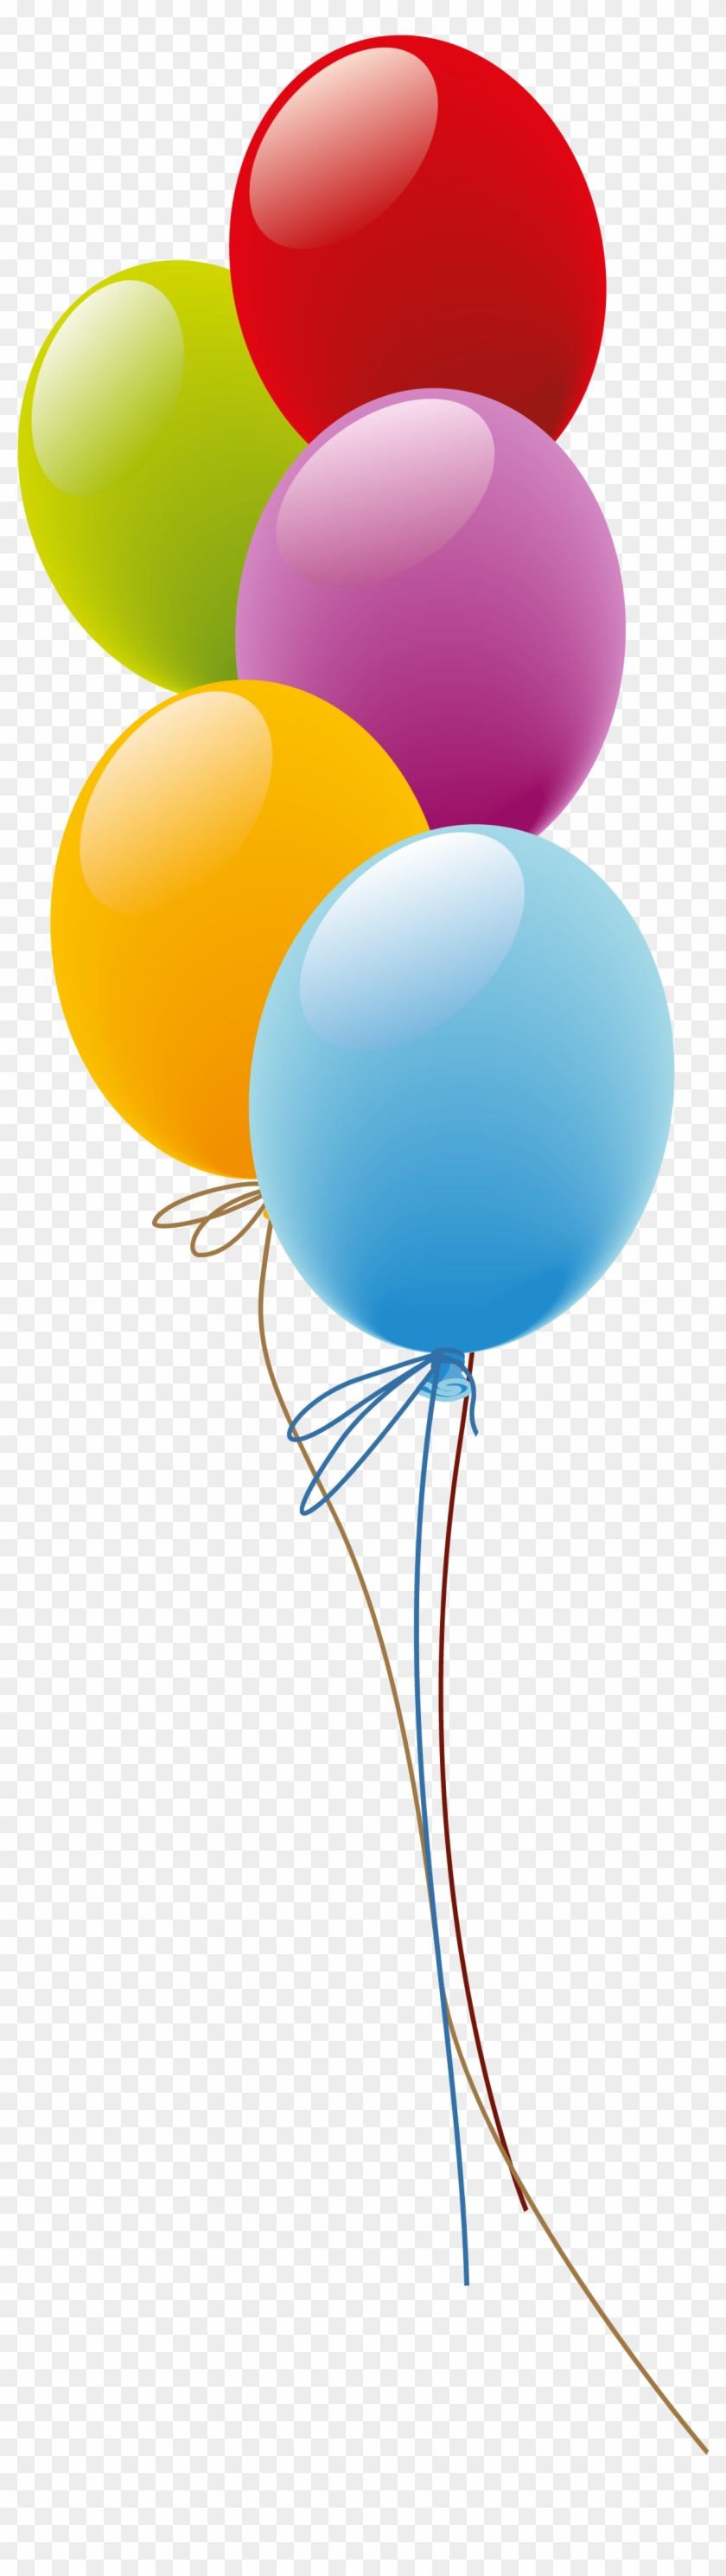 Balloons Png Picture - Balloon Pngs #19961